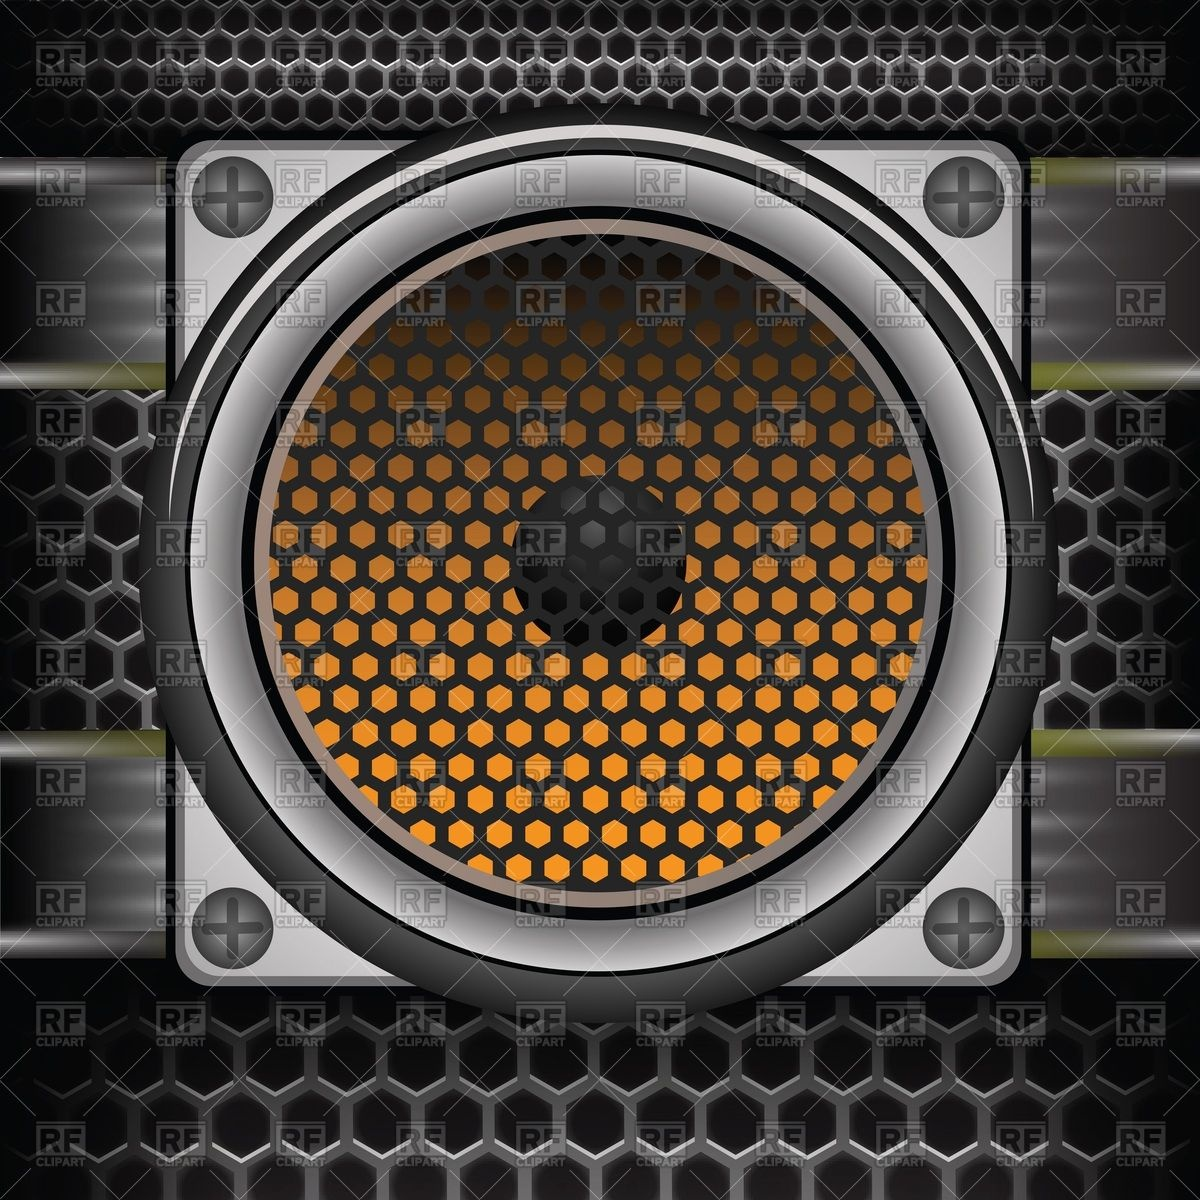 Boombox clipart vector. Speakers pencil and in